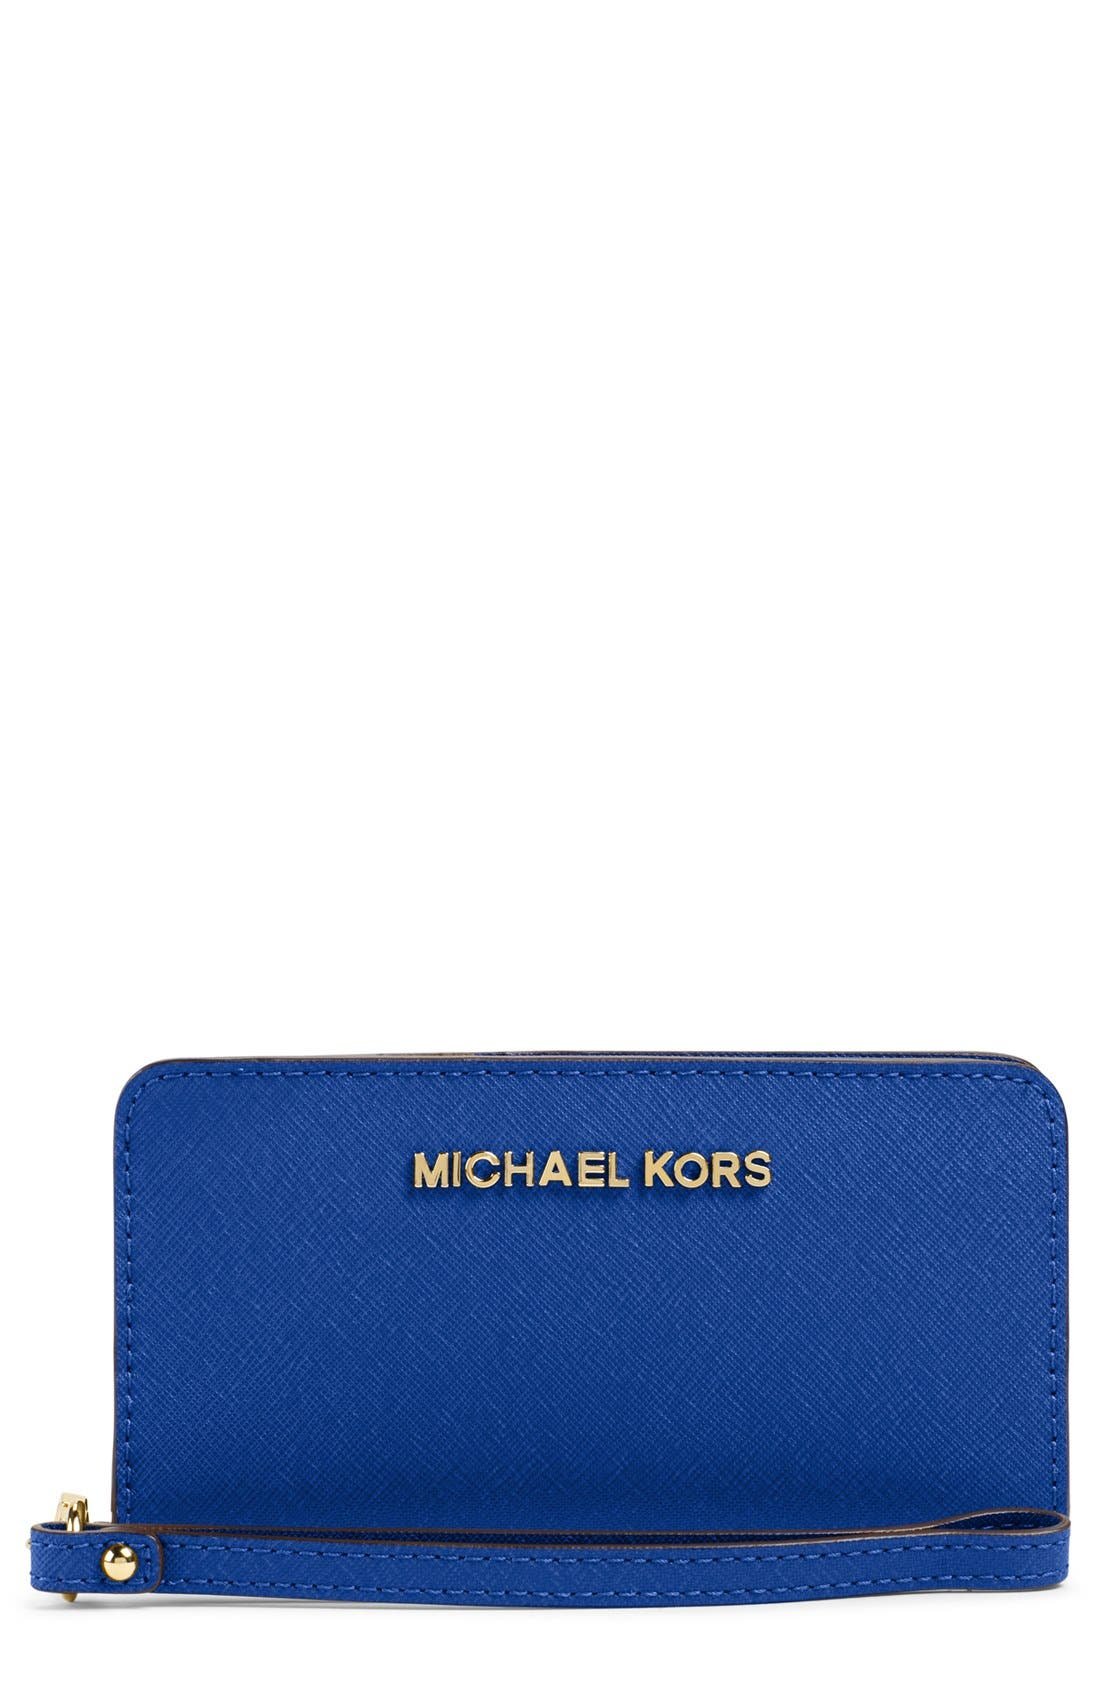 Main Image - MICHAEL Michael Kors Saffiano Leather Phone Wallet